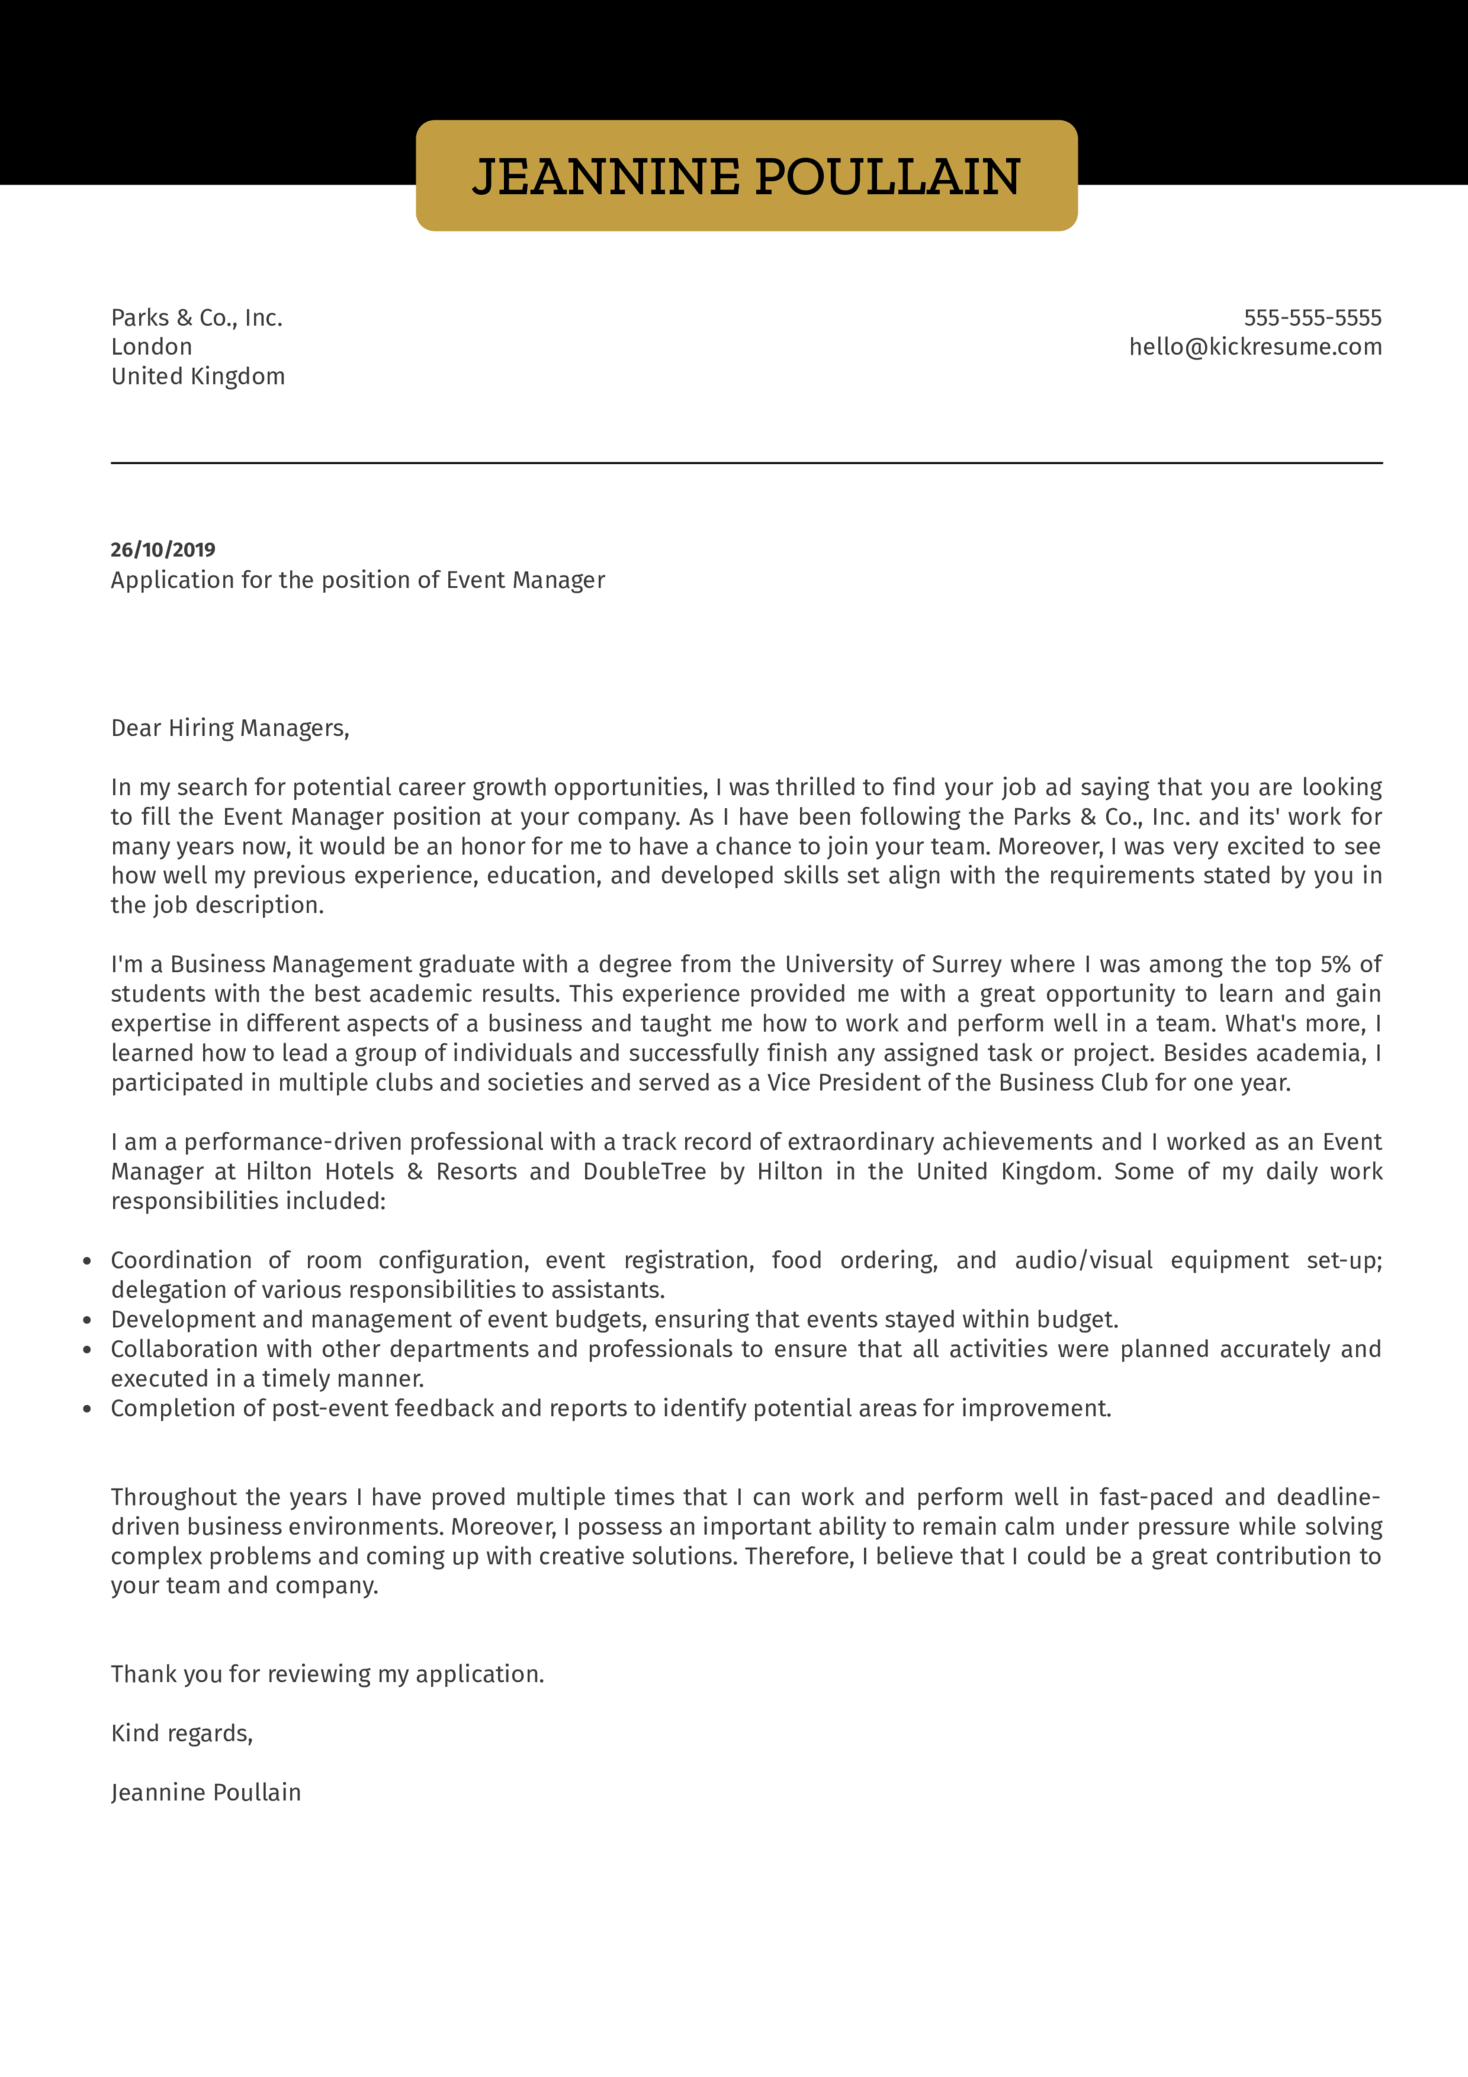 Event Manager Cover Letter Example